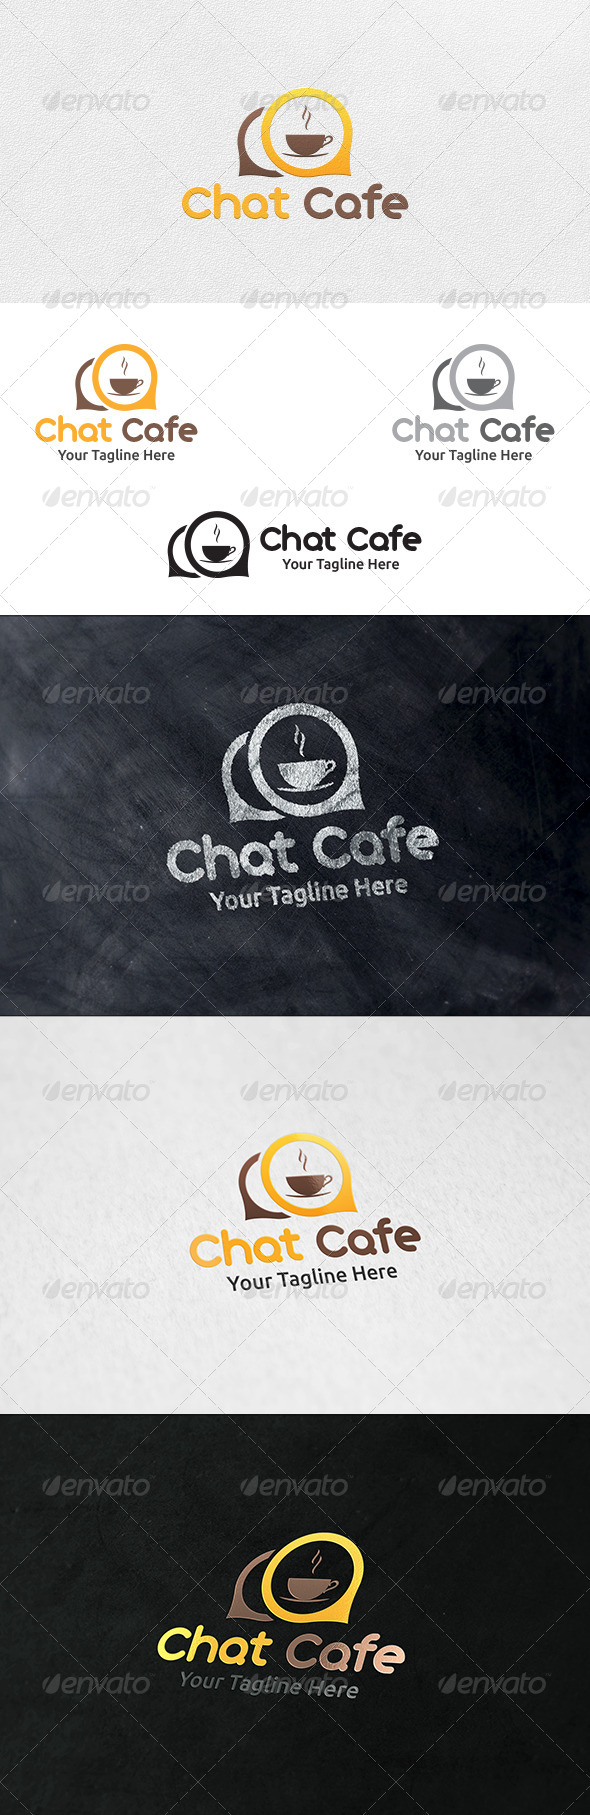 Chat Cafe - Logo Template - Symbols Logo Templates